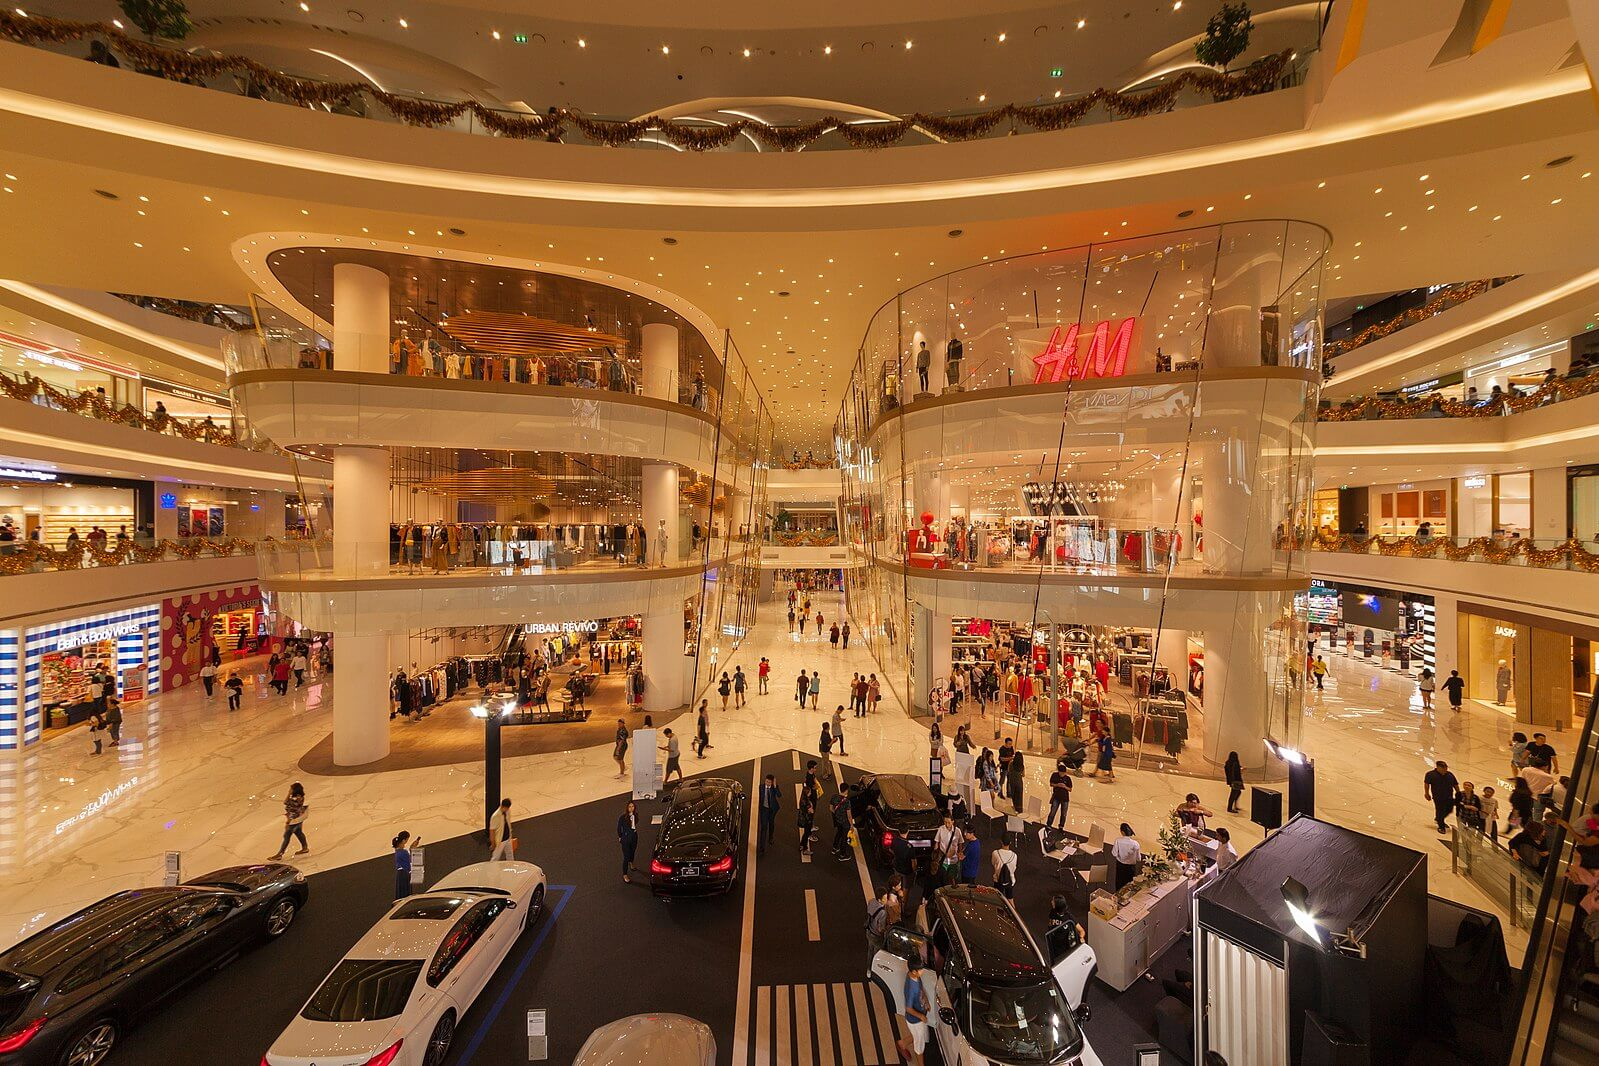 ICON Siam Raises The Bar For Bangkok Megamalls